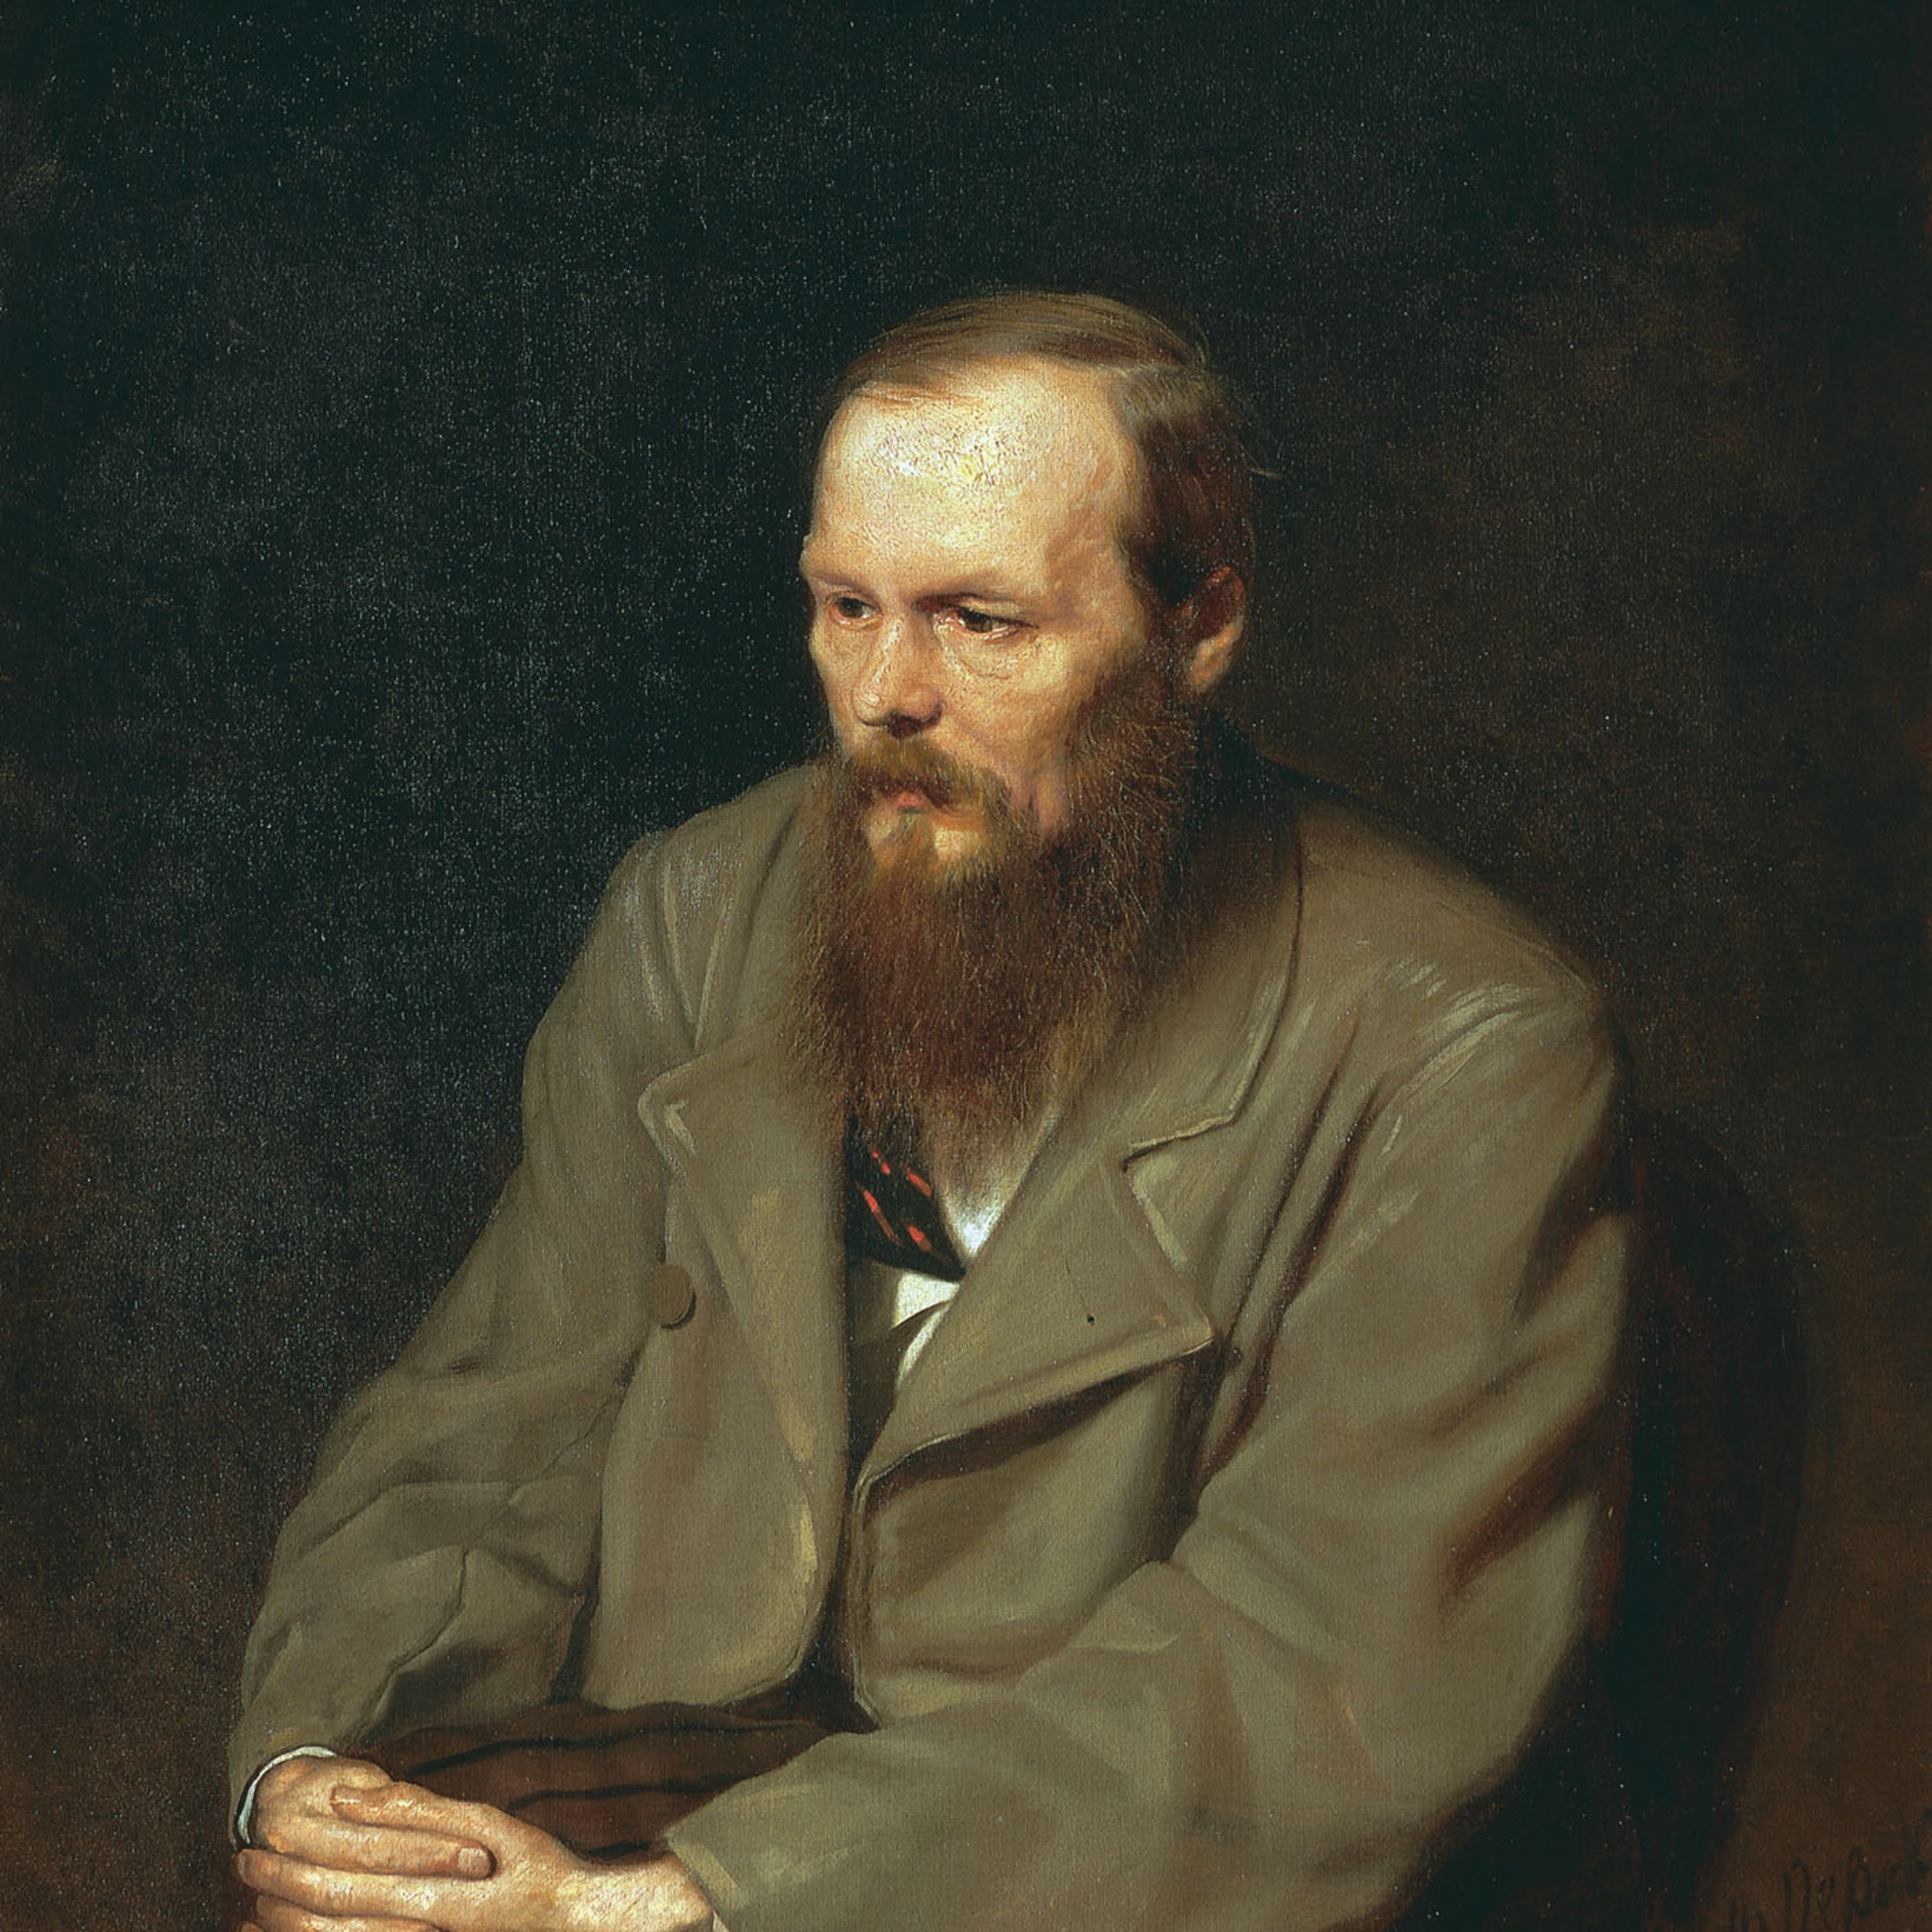 Crime and Punishment - Fyodor Dostoyevsky - Chapters 1-2